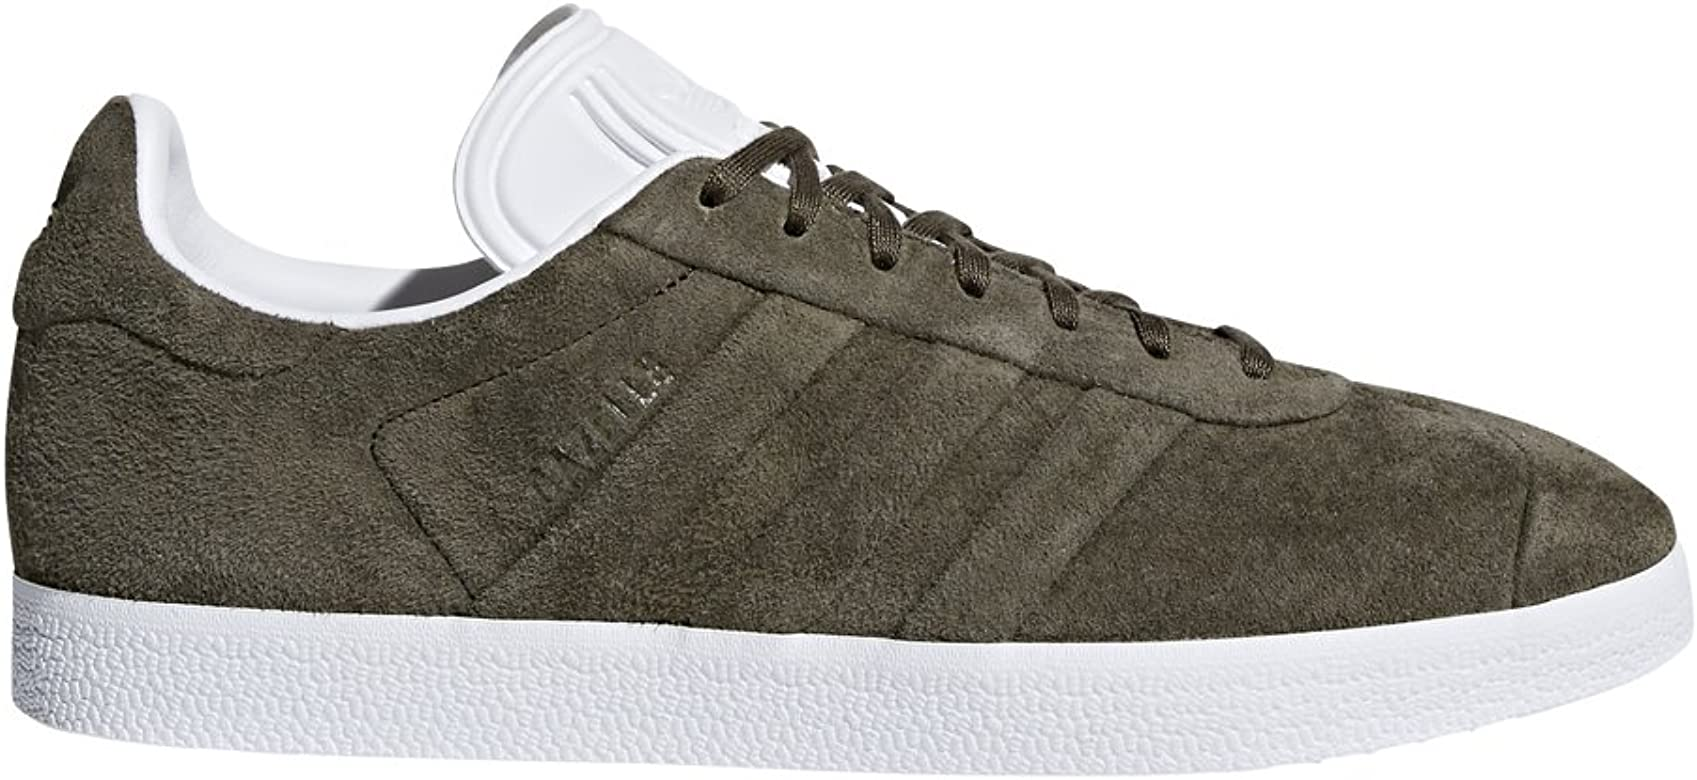 a33d6f0675 Mens Gazelle Stitch and Turn Athletic & Sneakers Taupe